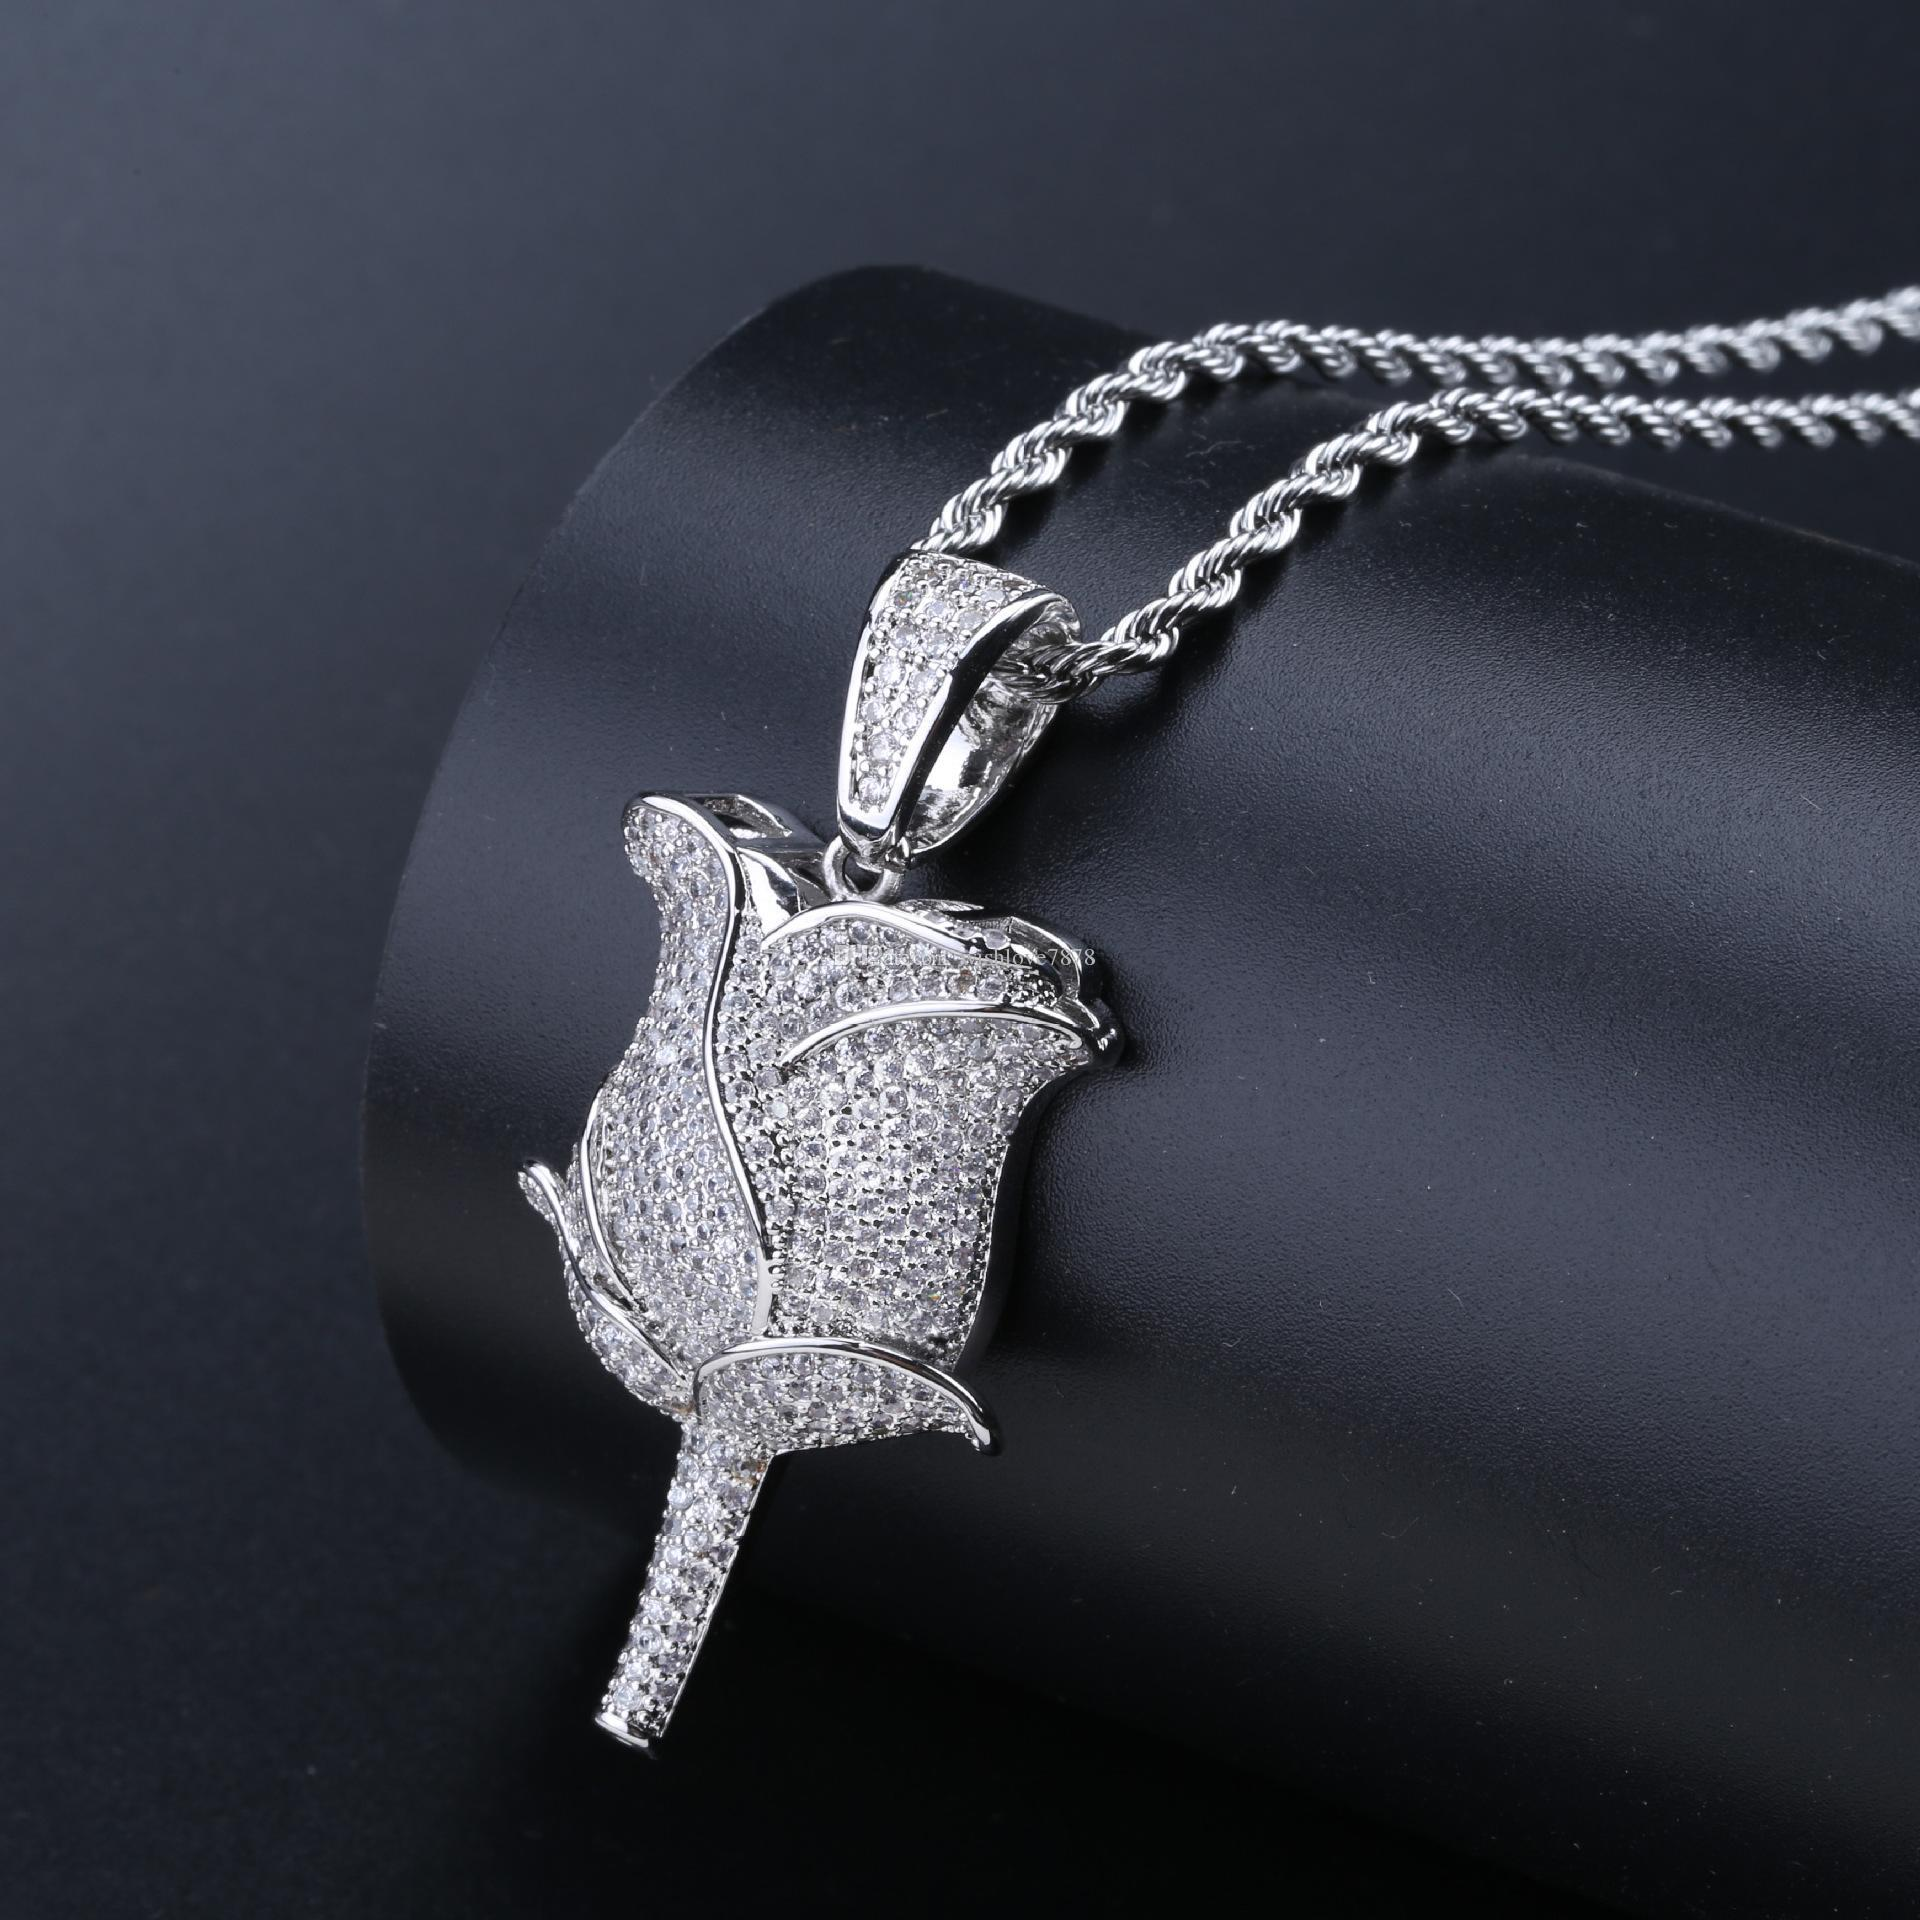 New Rose Flower Petals Necklace Pendant Gold Silver Rosegold Iced Out Cubic Zircon Bling Men Hip Hop Jewelry